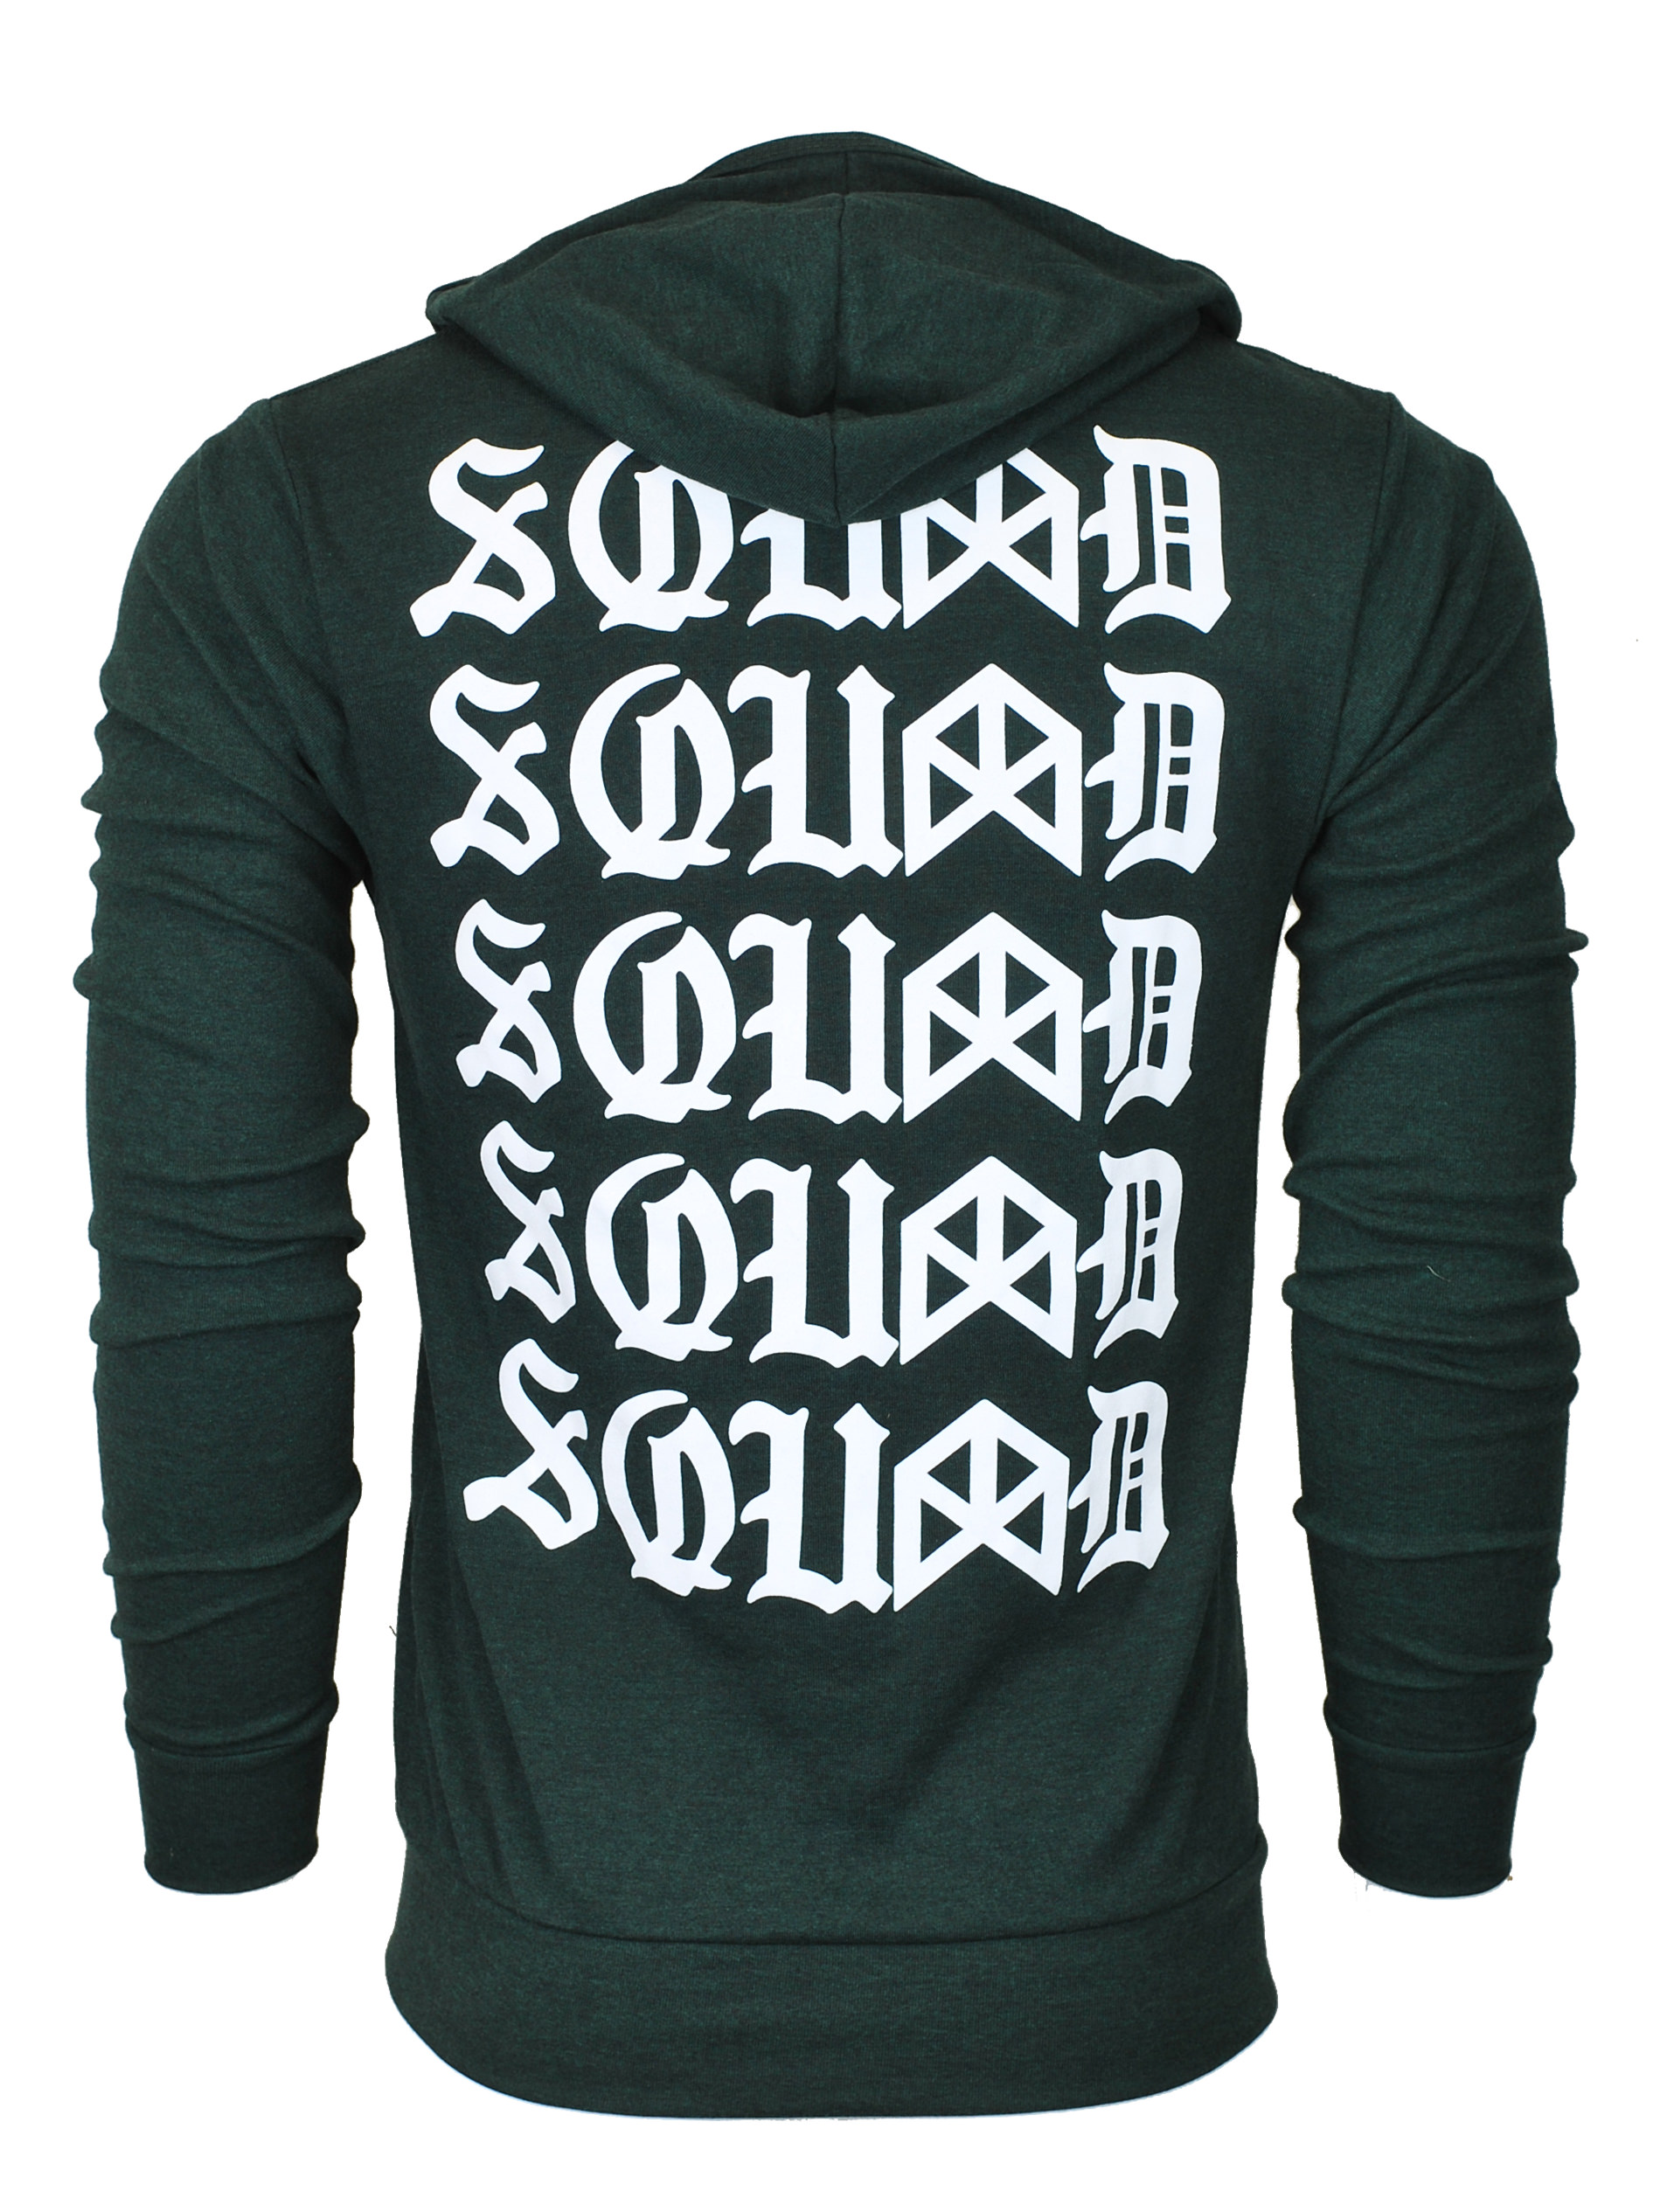 SQUAD Triblend Zip-Up Lightweight Hoodie - Emerald/White